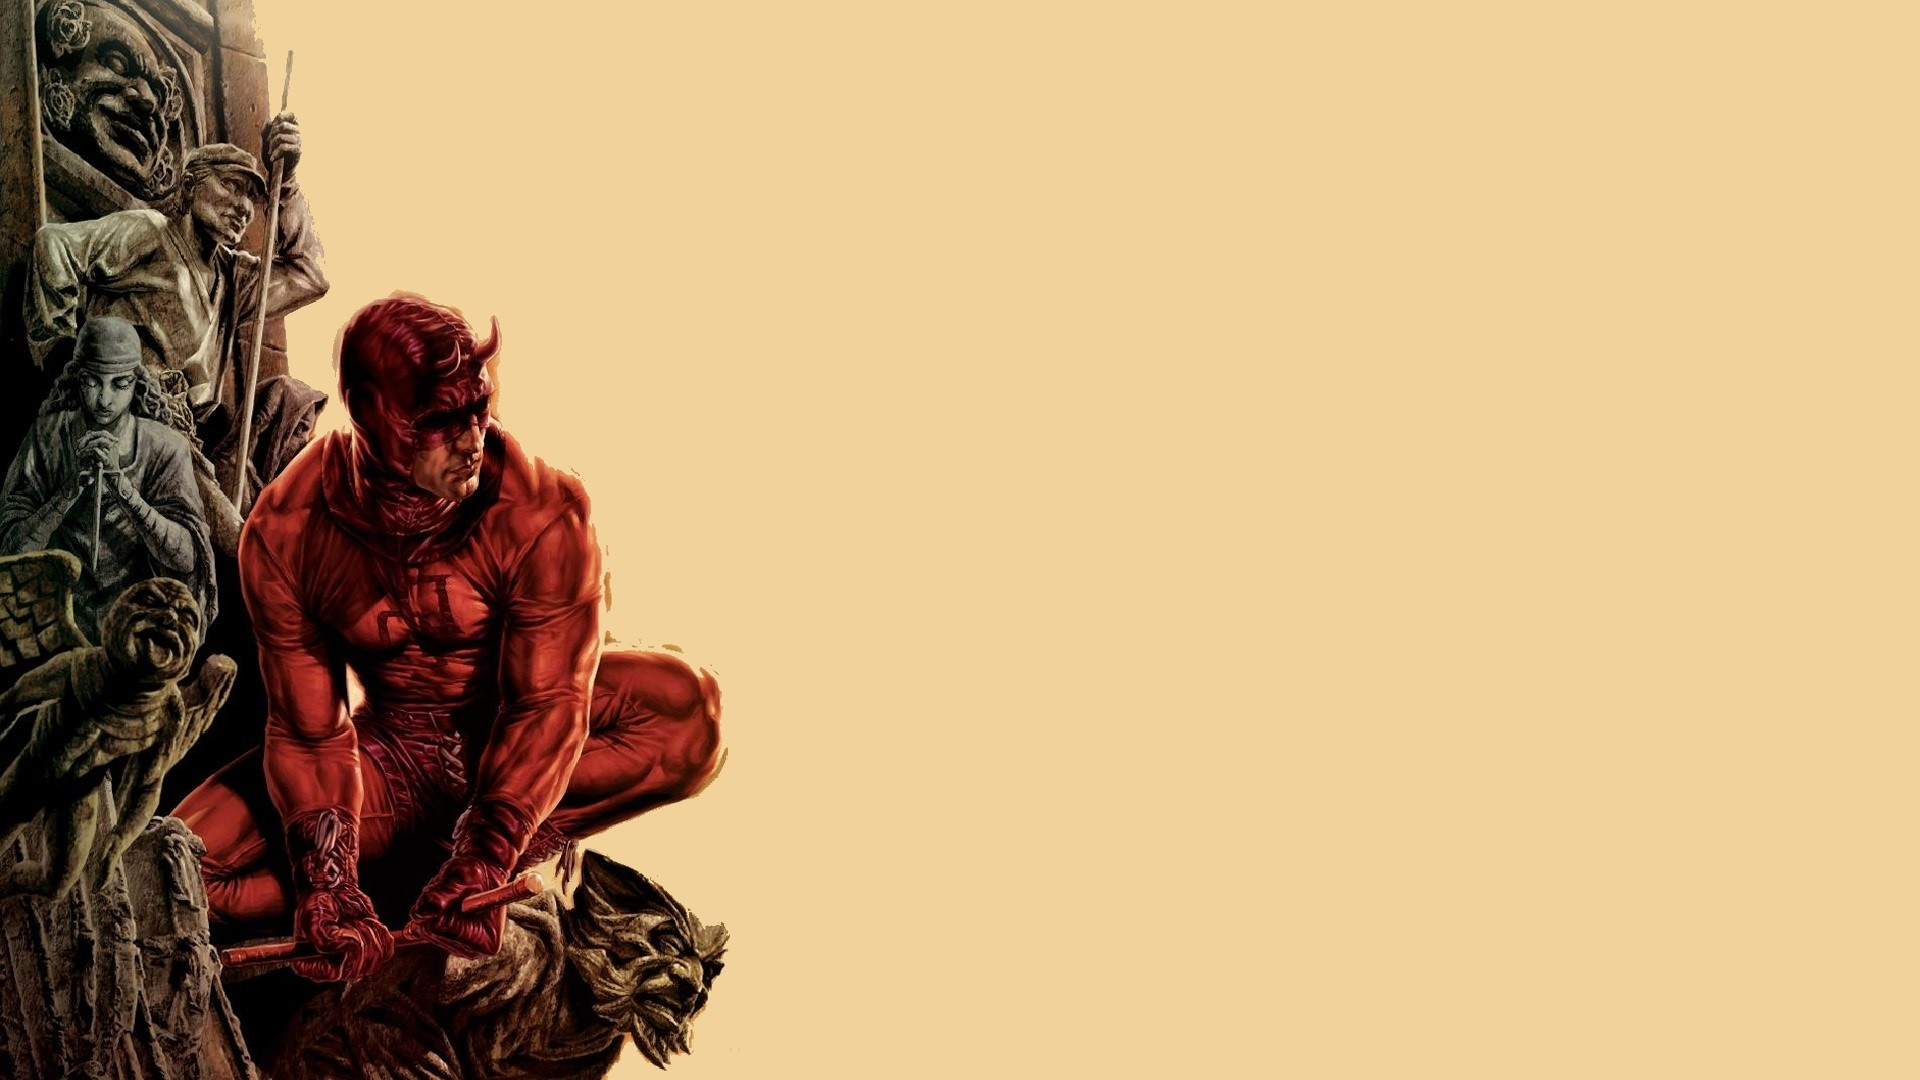 Res: 1920x1080, Daredevil Wallpapers Full Hd